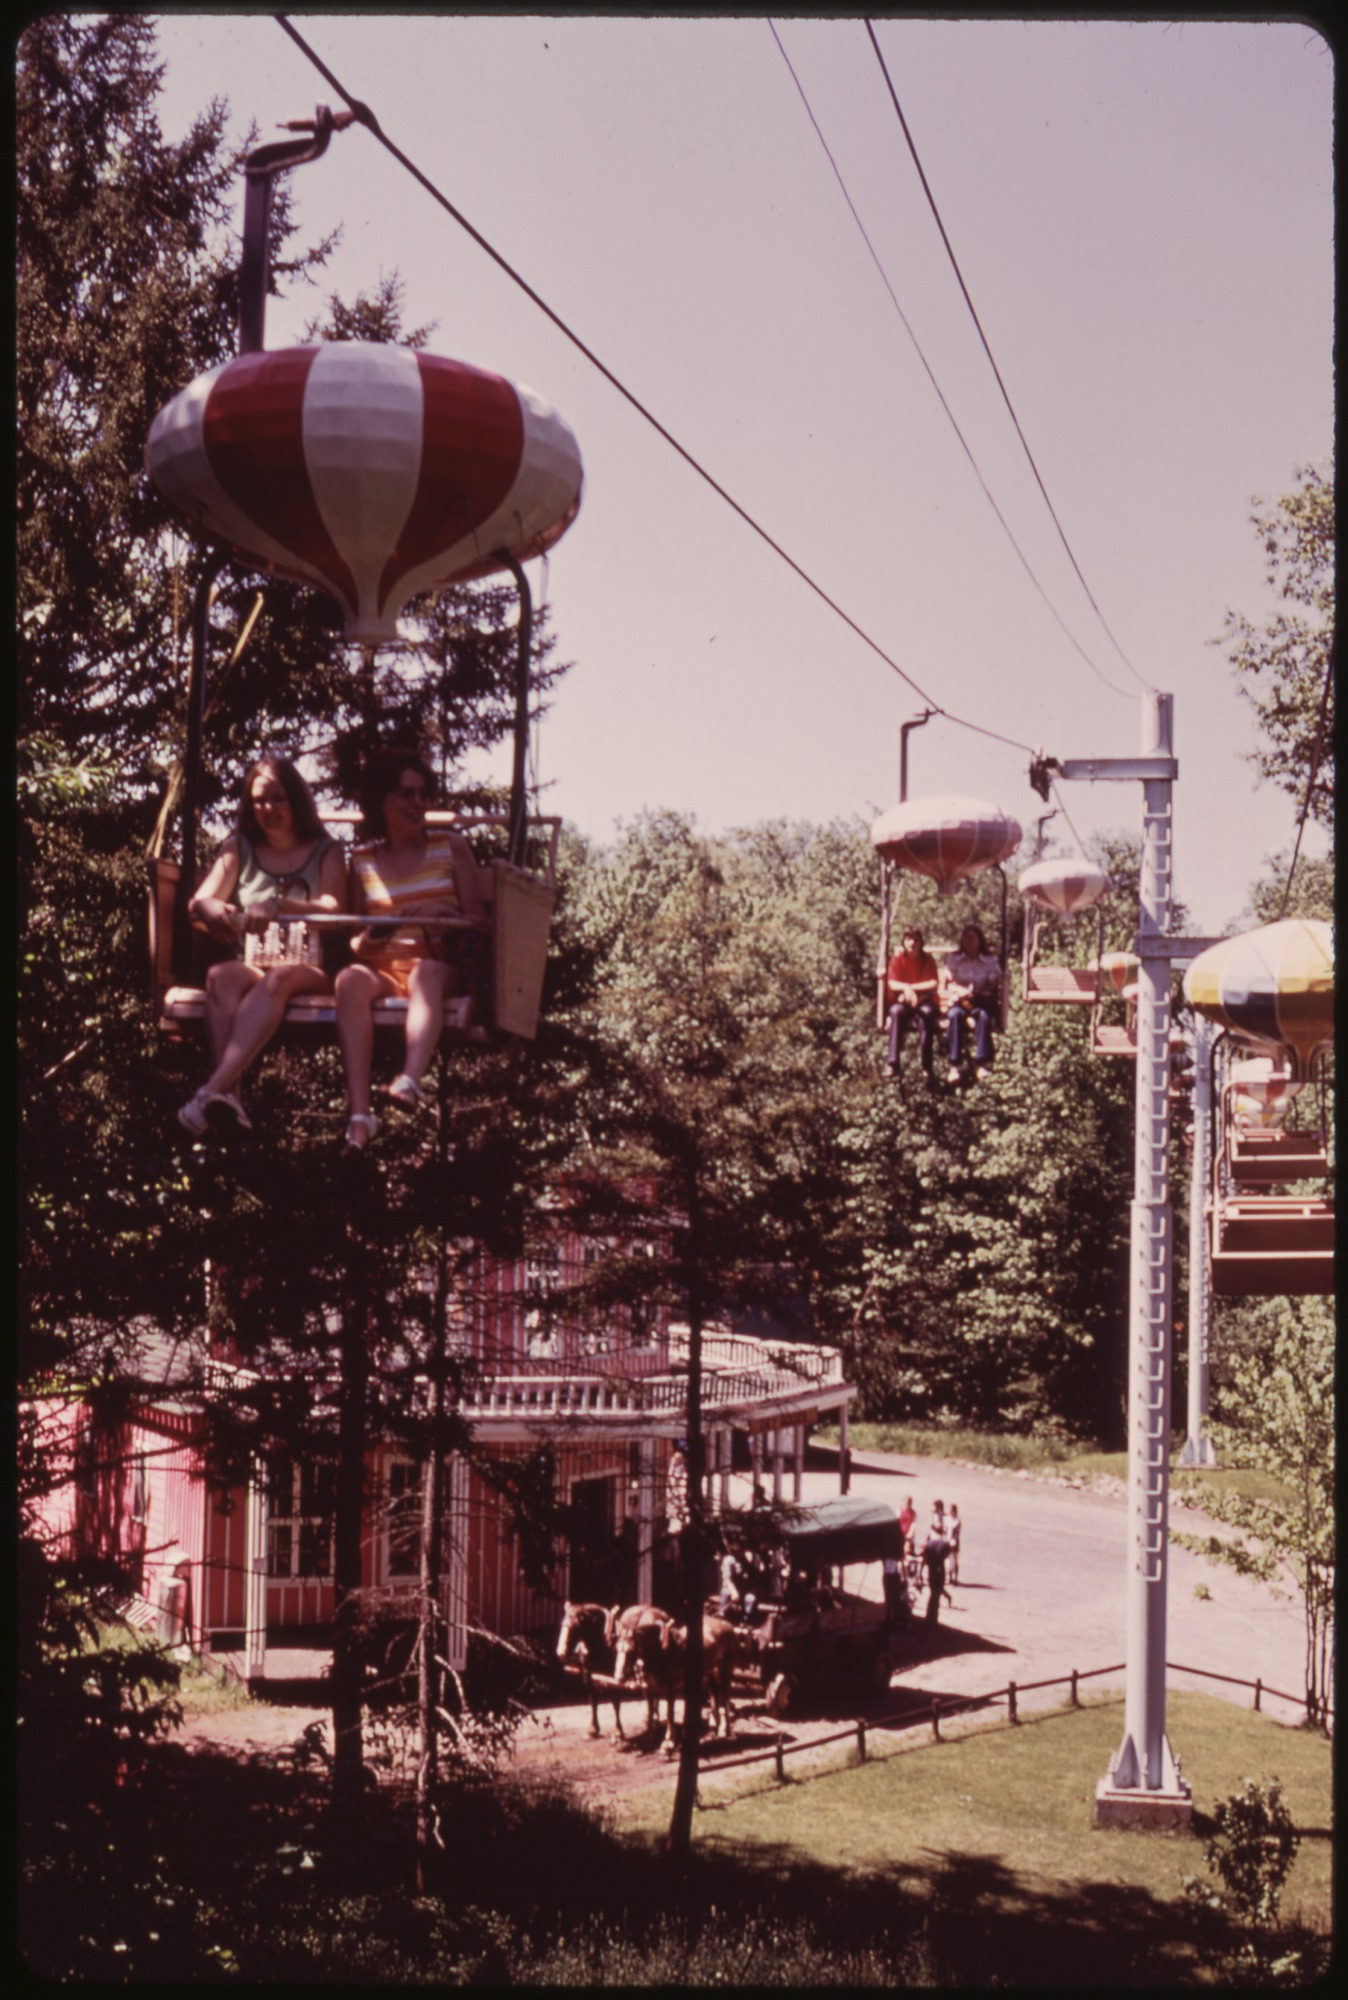 FileCHAIR LIFT AT ENCHANTED FOREST TOURIST ATTRACTION AT